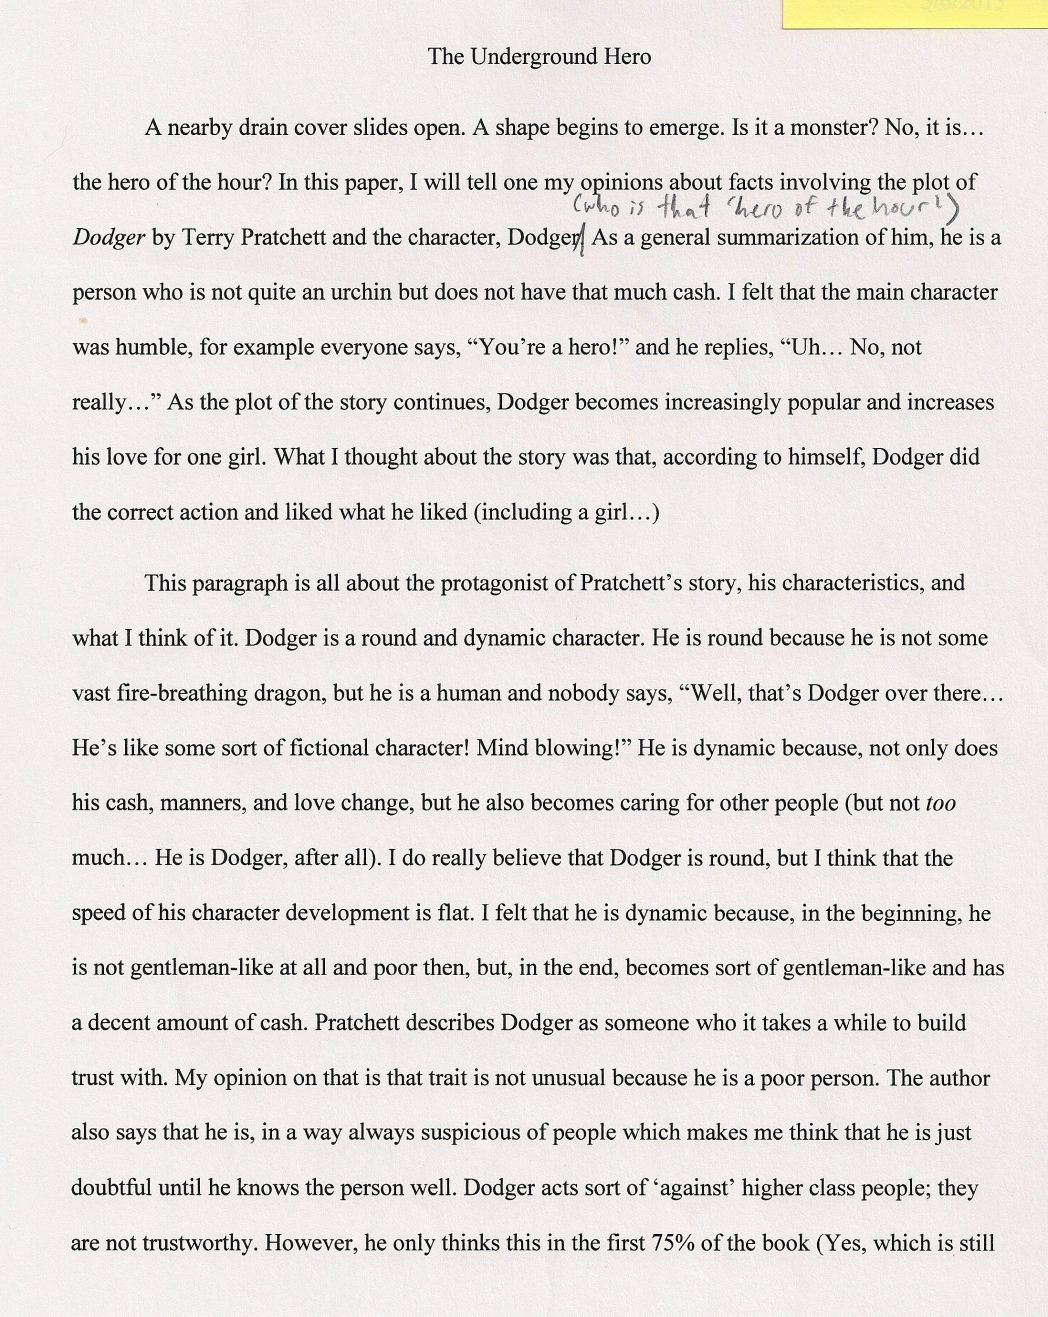 013 An Essay About My Hero Essays On Heroess Good Writing What To Write Argumentative The Undergro Should I 1048x1317 Fascinating Heroine Teacher 500 Words A Narrative Full